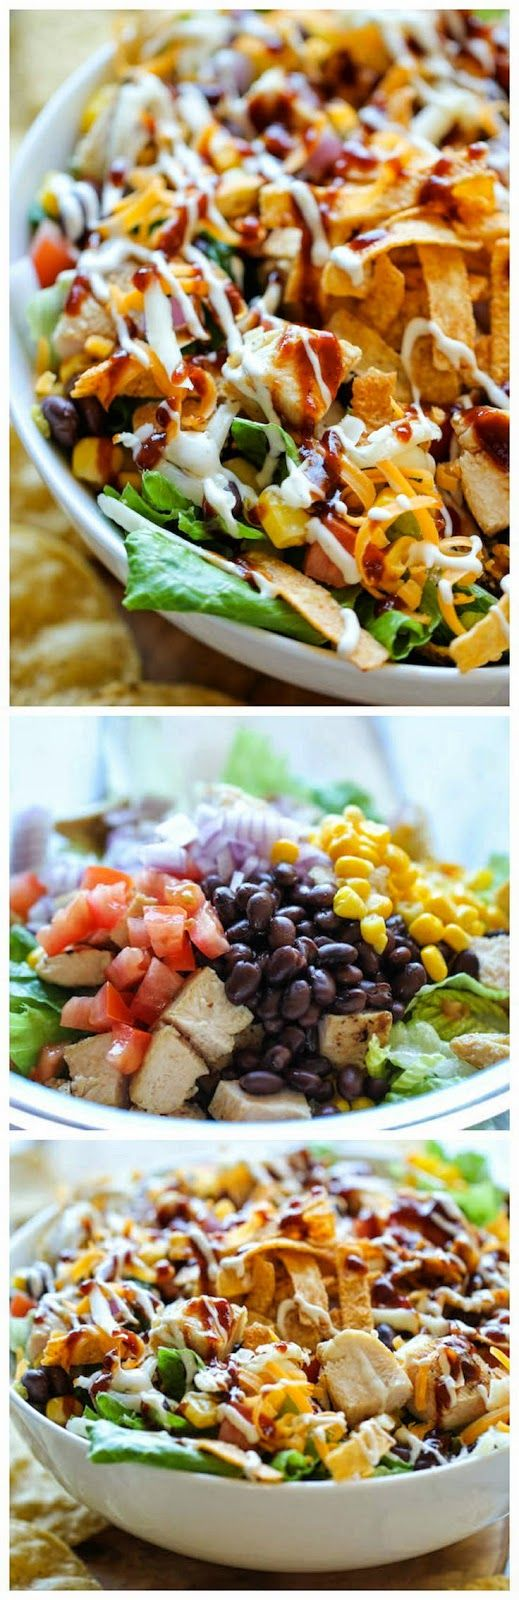 BBQ Chicken Salad recipe from @damndelicious with correct link!! Sorry y'all! Made this a couple times now...my son LOVES IT!